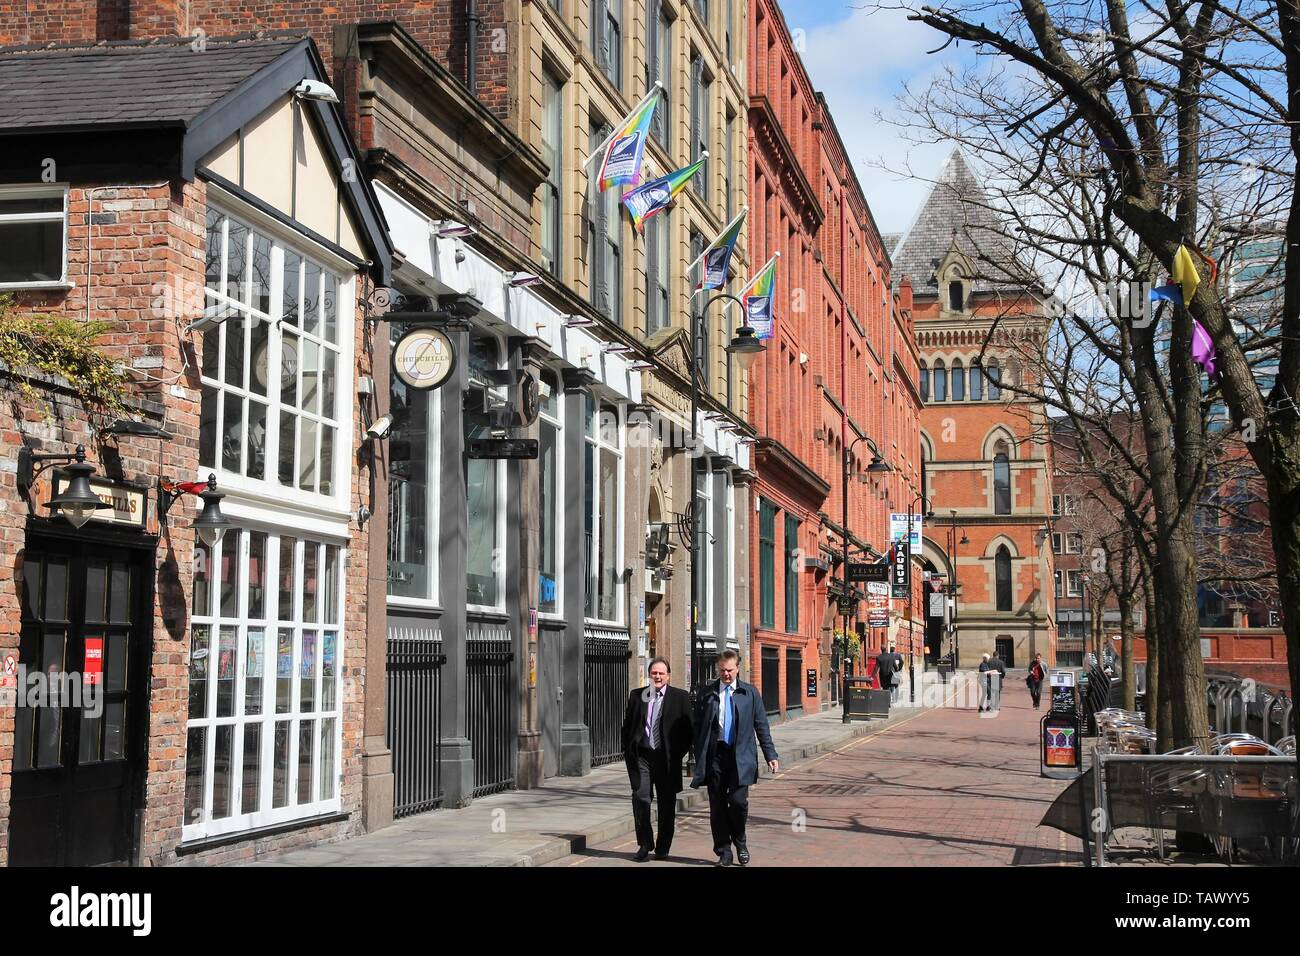 MANCHESTER, UK - APRIL 23, 2013: People visit famous Gay Village in Manchester, UK. Gay Village is one of oldest and largest LGBT related communities  - Stock Image